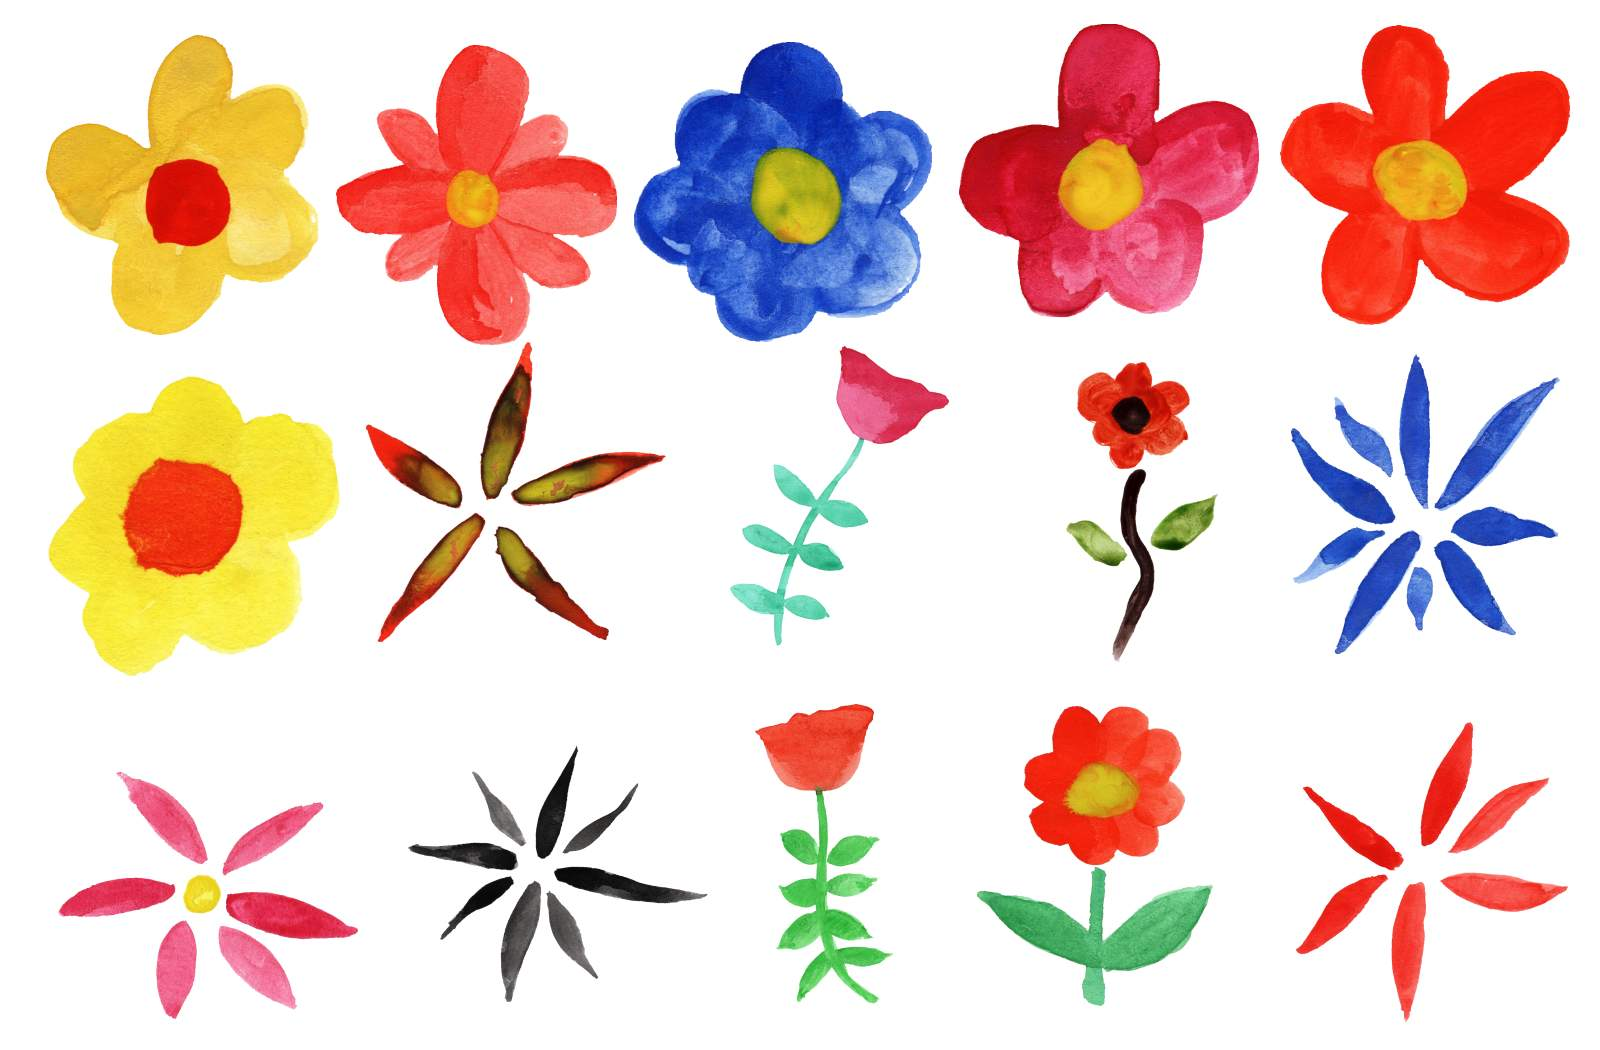 15 Watercolor Flowers PNG Transparent Vol 2